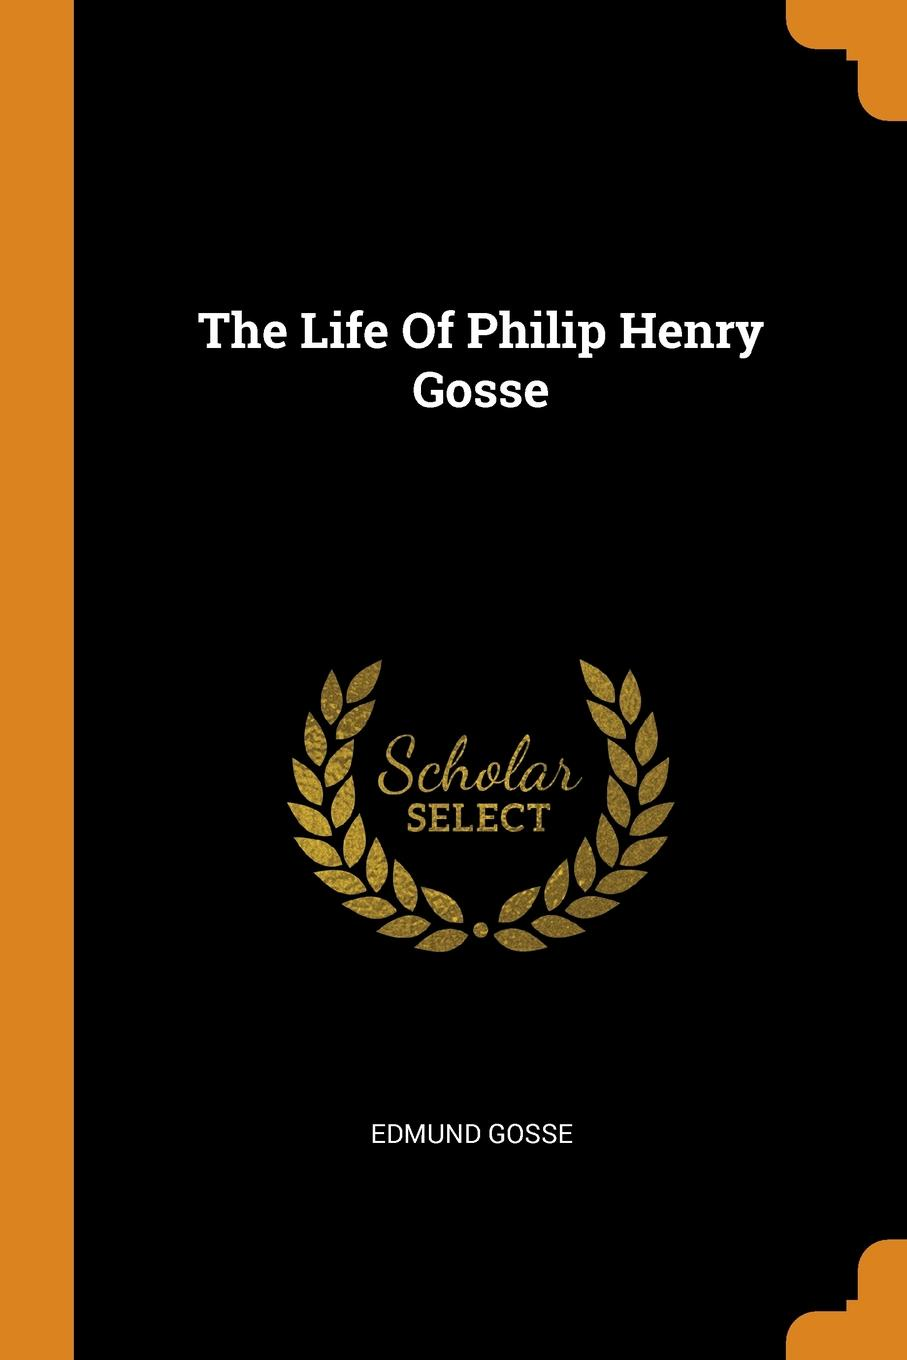 лучшая цена Edmund Gosse The Life Of Philip Henry Gosse